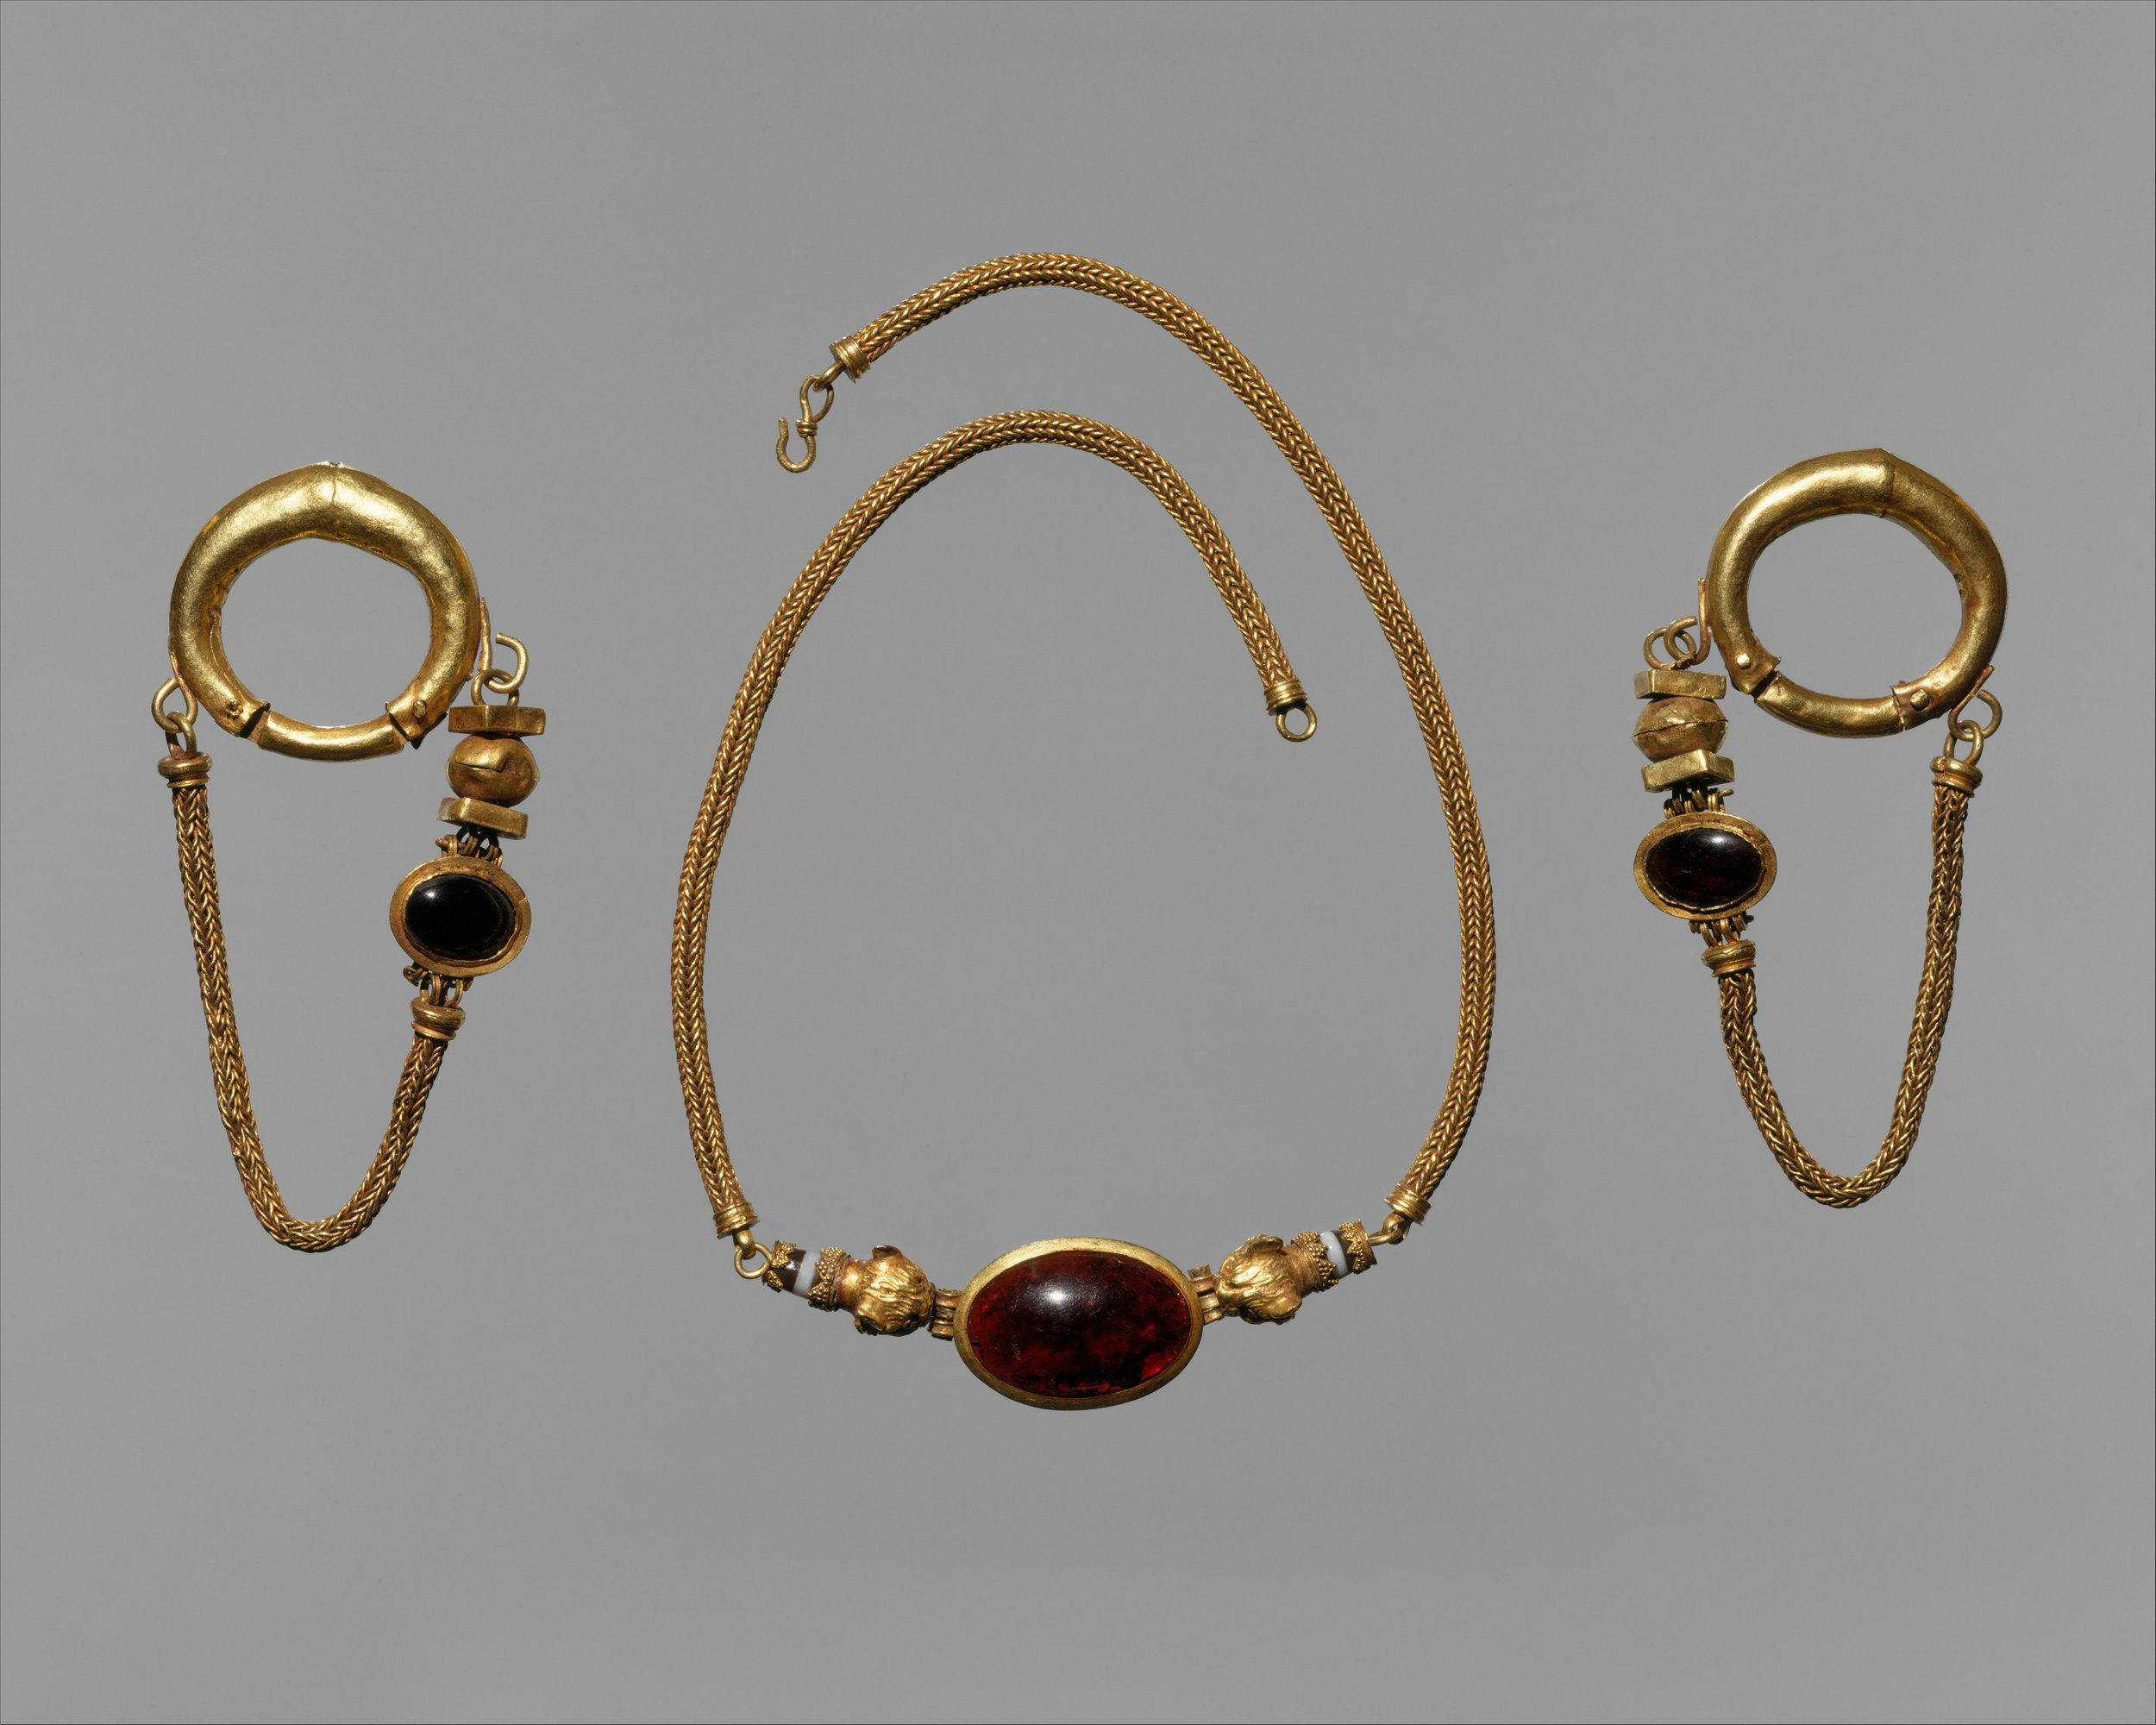 This necklace and earrings from 1st century BCE. form a blingy matching set featuring large garnets.   Courtesy of the Metropolitan Museum of Art